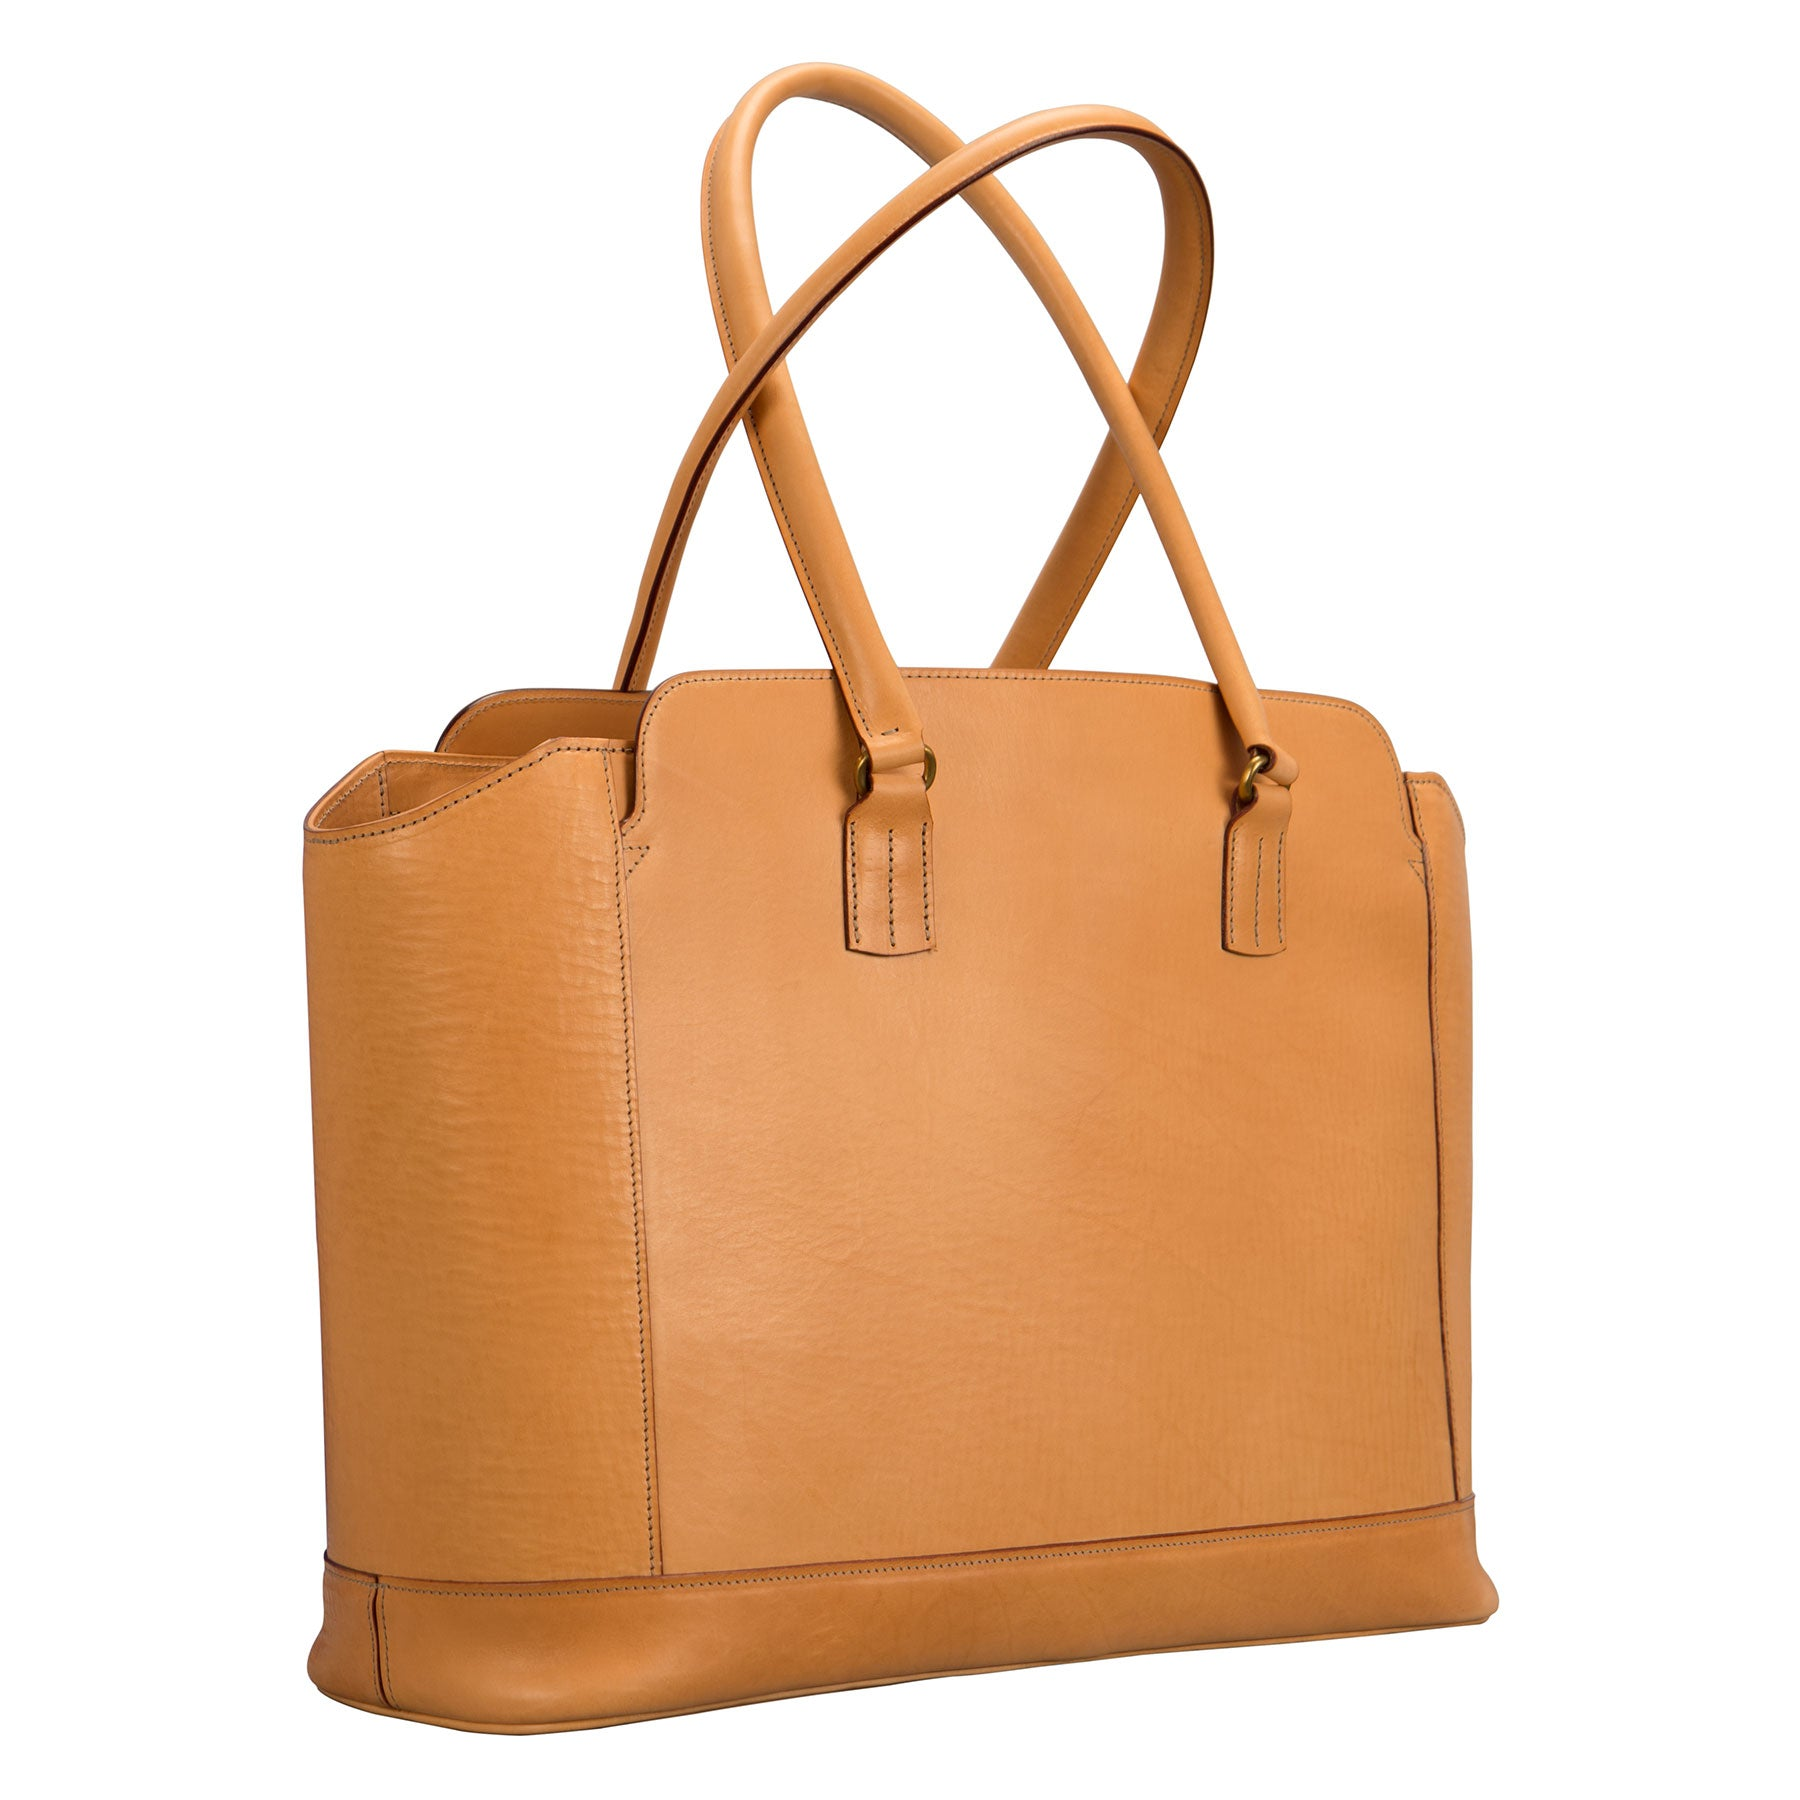 Glaser Designs City Tote with Long Handles . Hand burnished Natural vegetable tanned leather. Solid brass hardware. Made to measure, custom sizes.